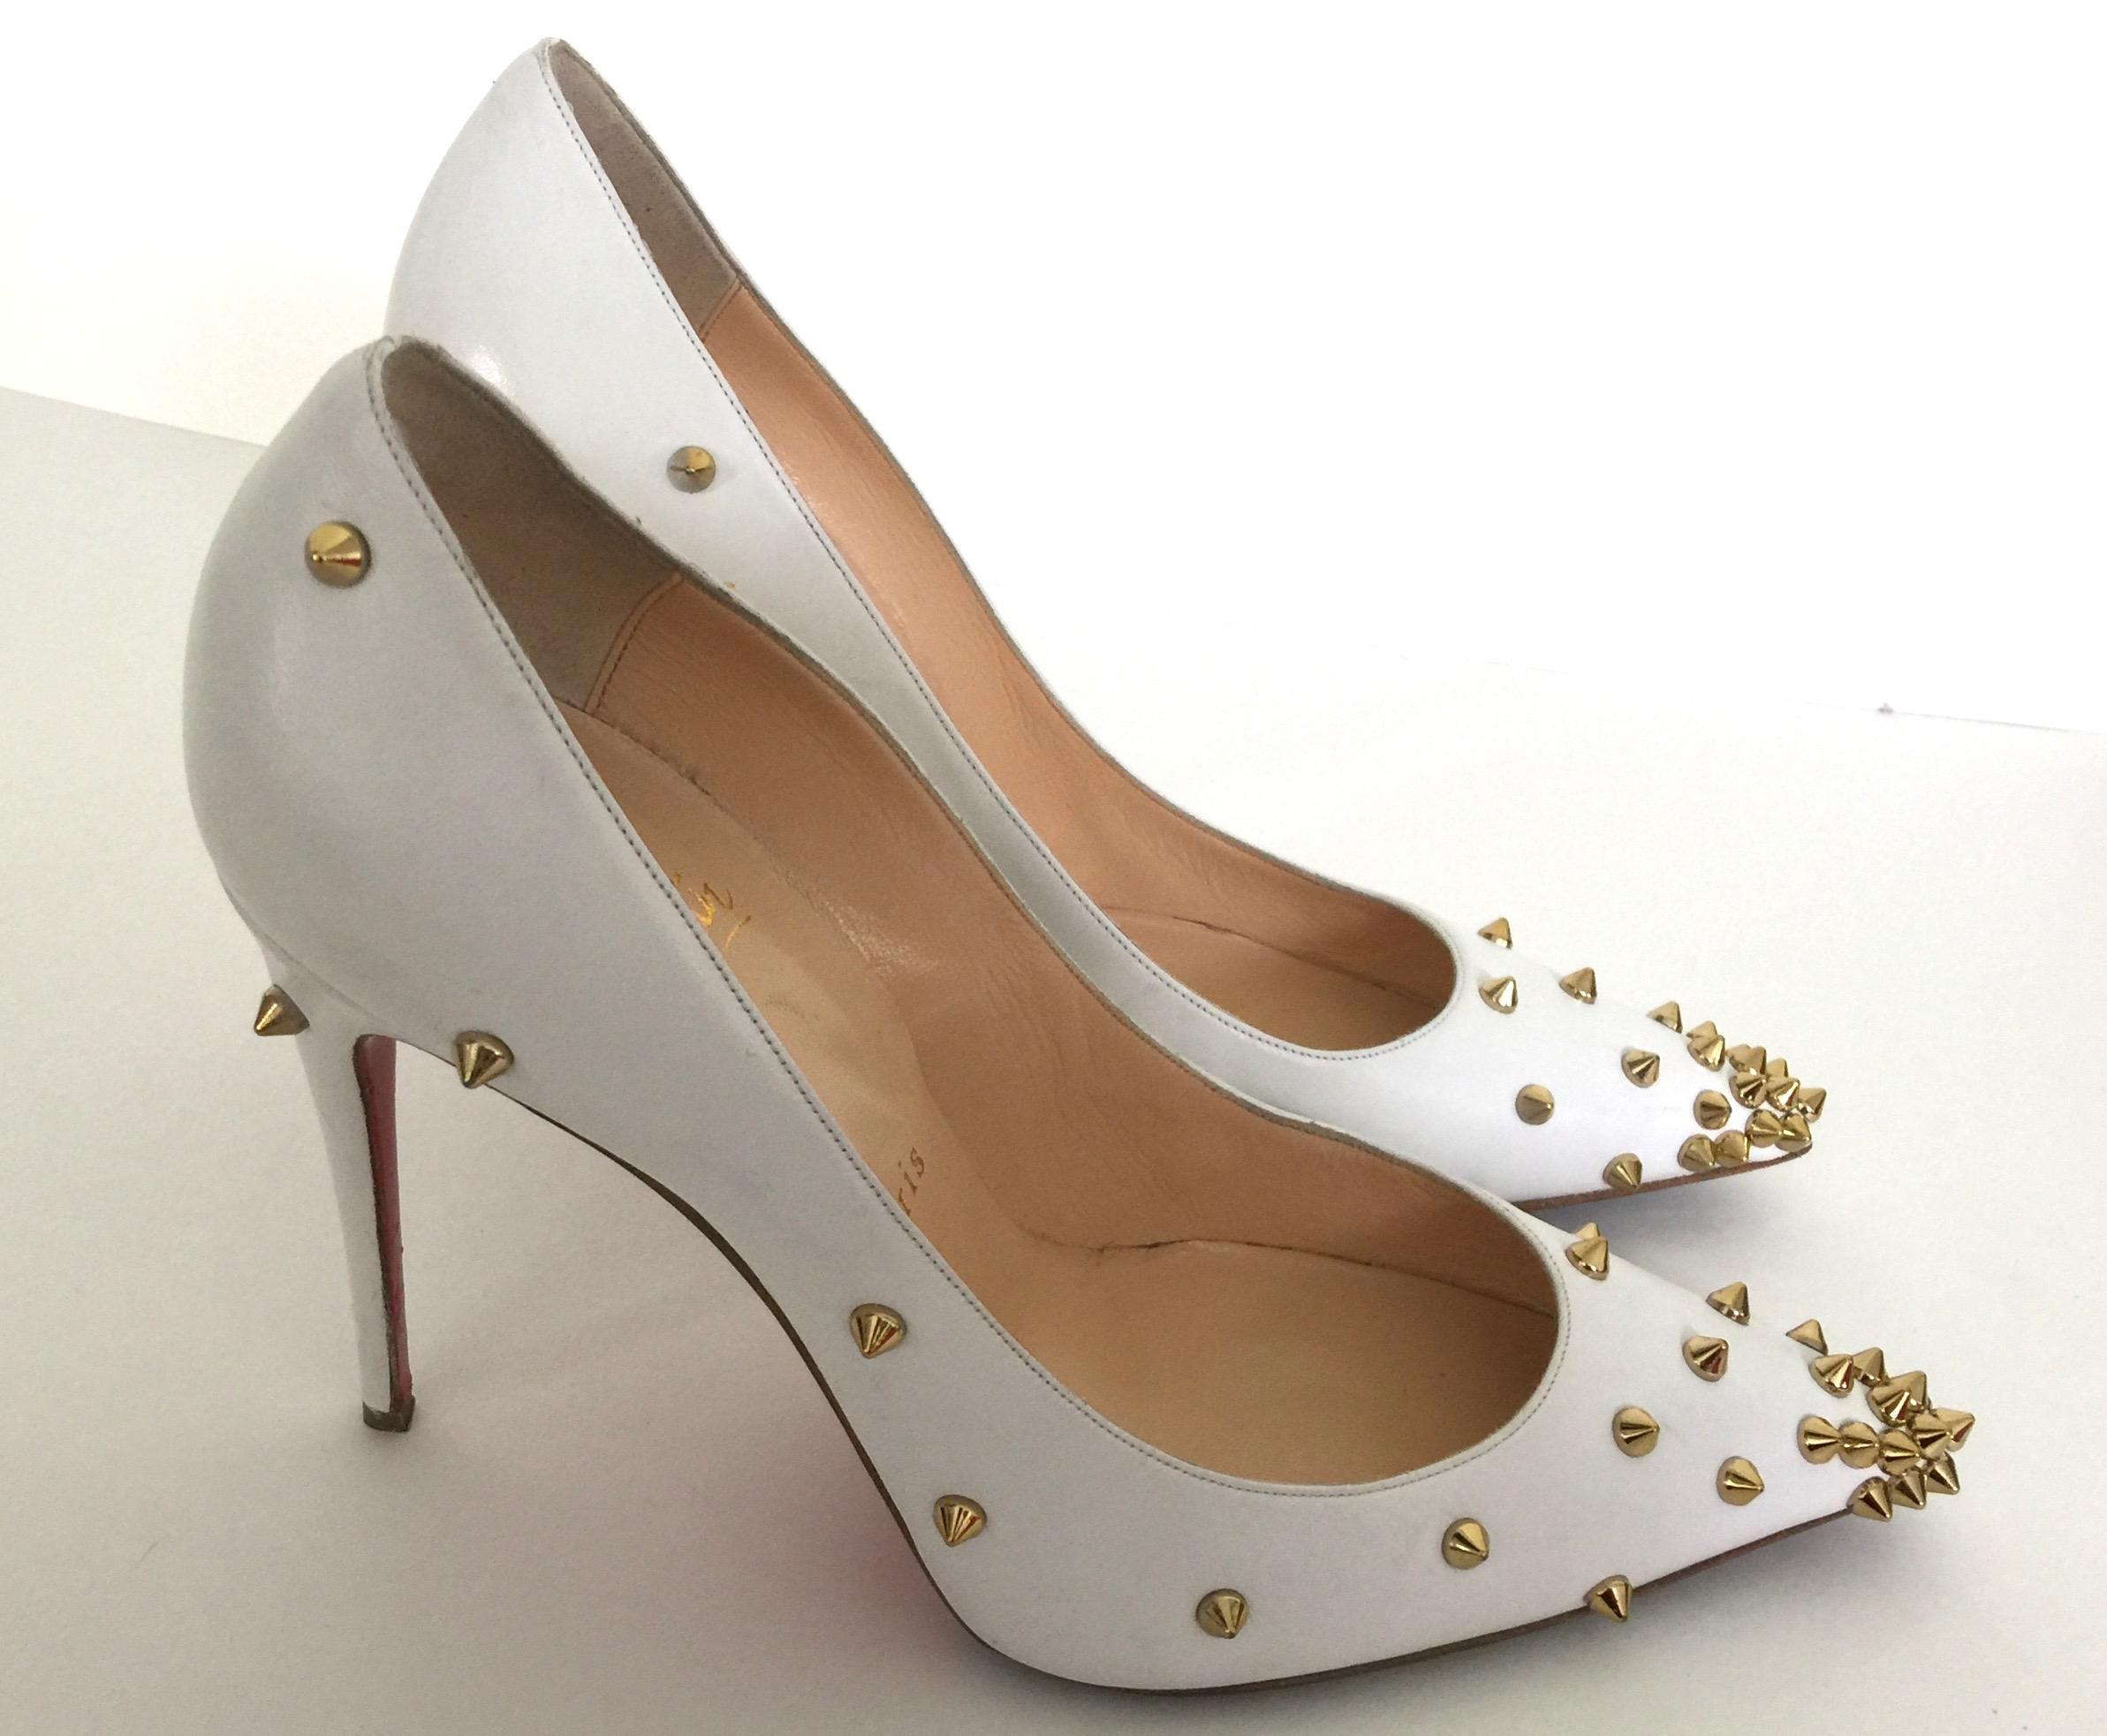 085cf231521 ... Christian Louboutin White Degraspike 100 Gold Spiked Leather Pumps  Pumps Pumps Size US 9.5 a246f9 ...